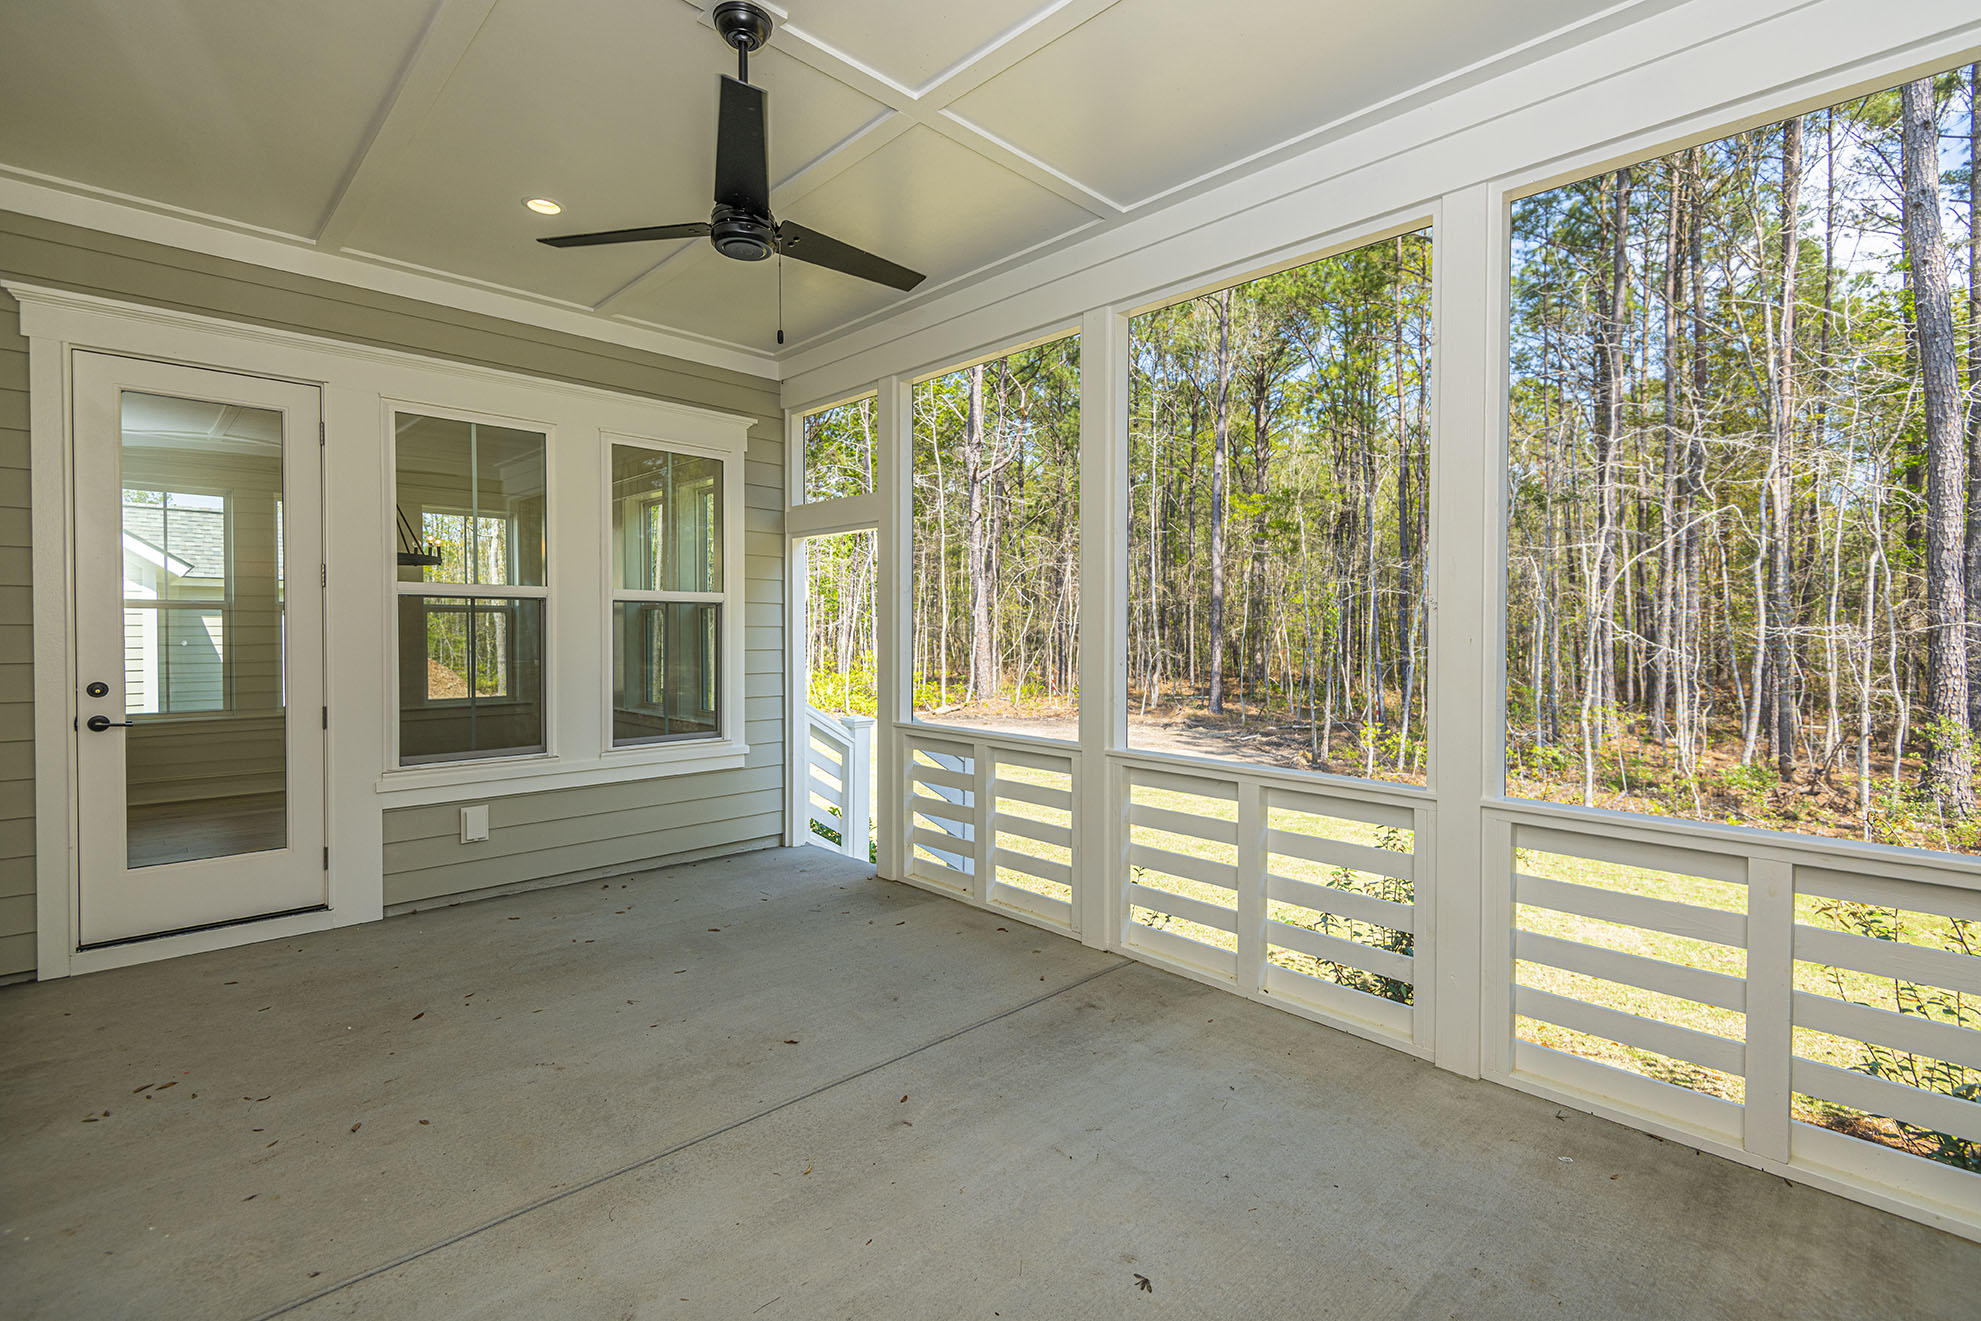 Awendaw Village Homes For Sale - 1072 Reserve, Awendaw, SC - 16